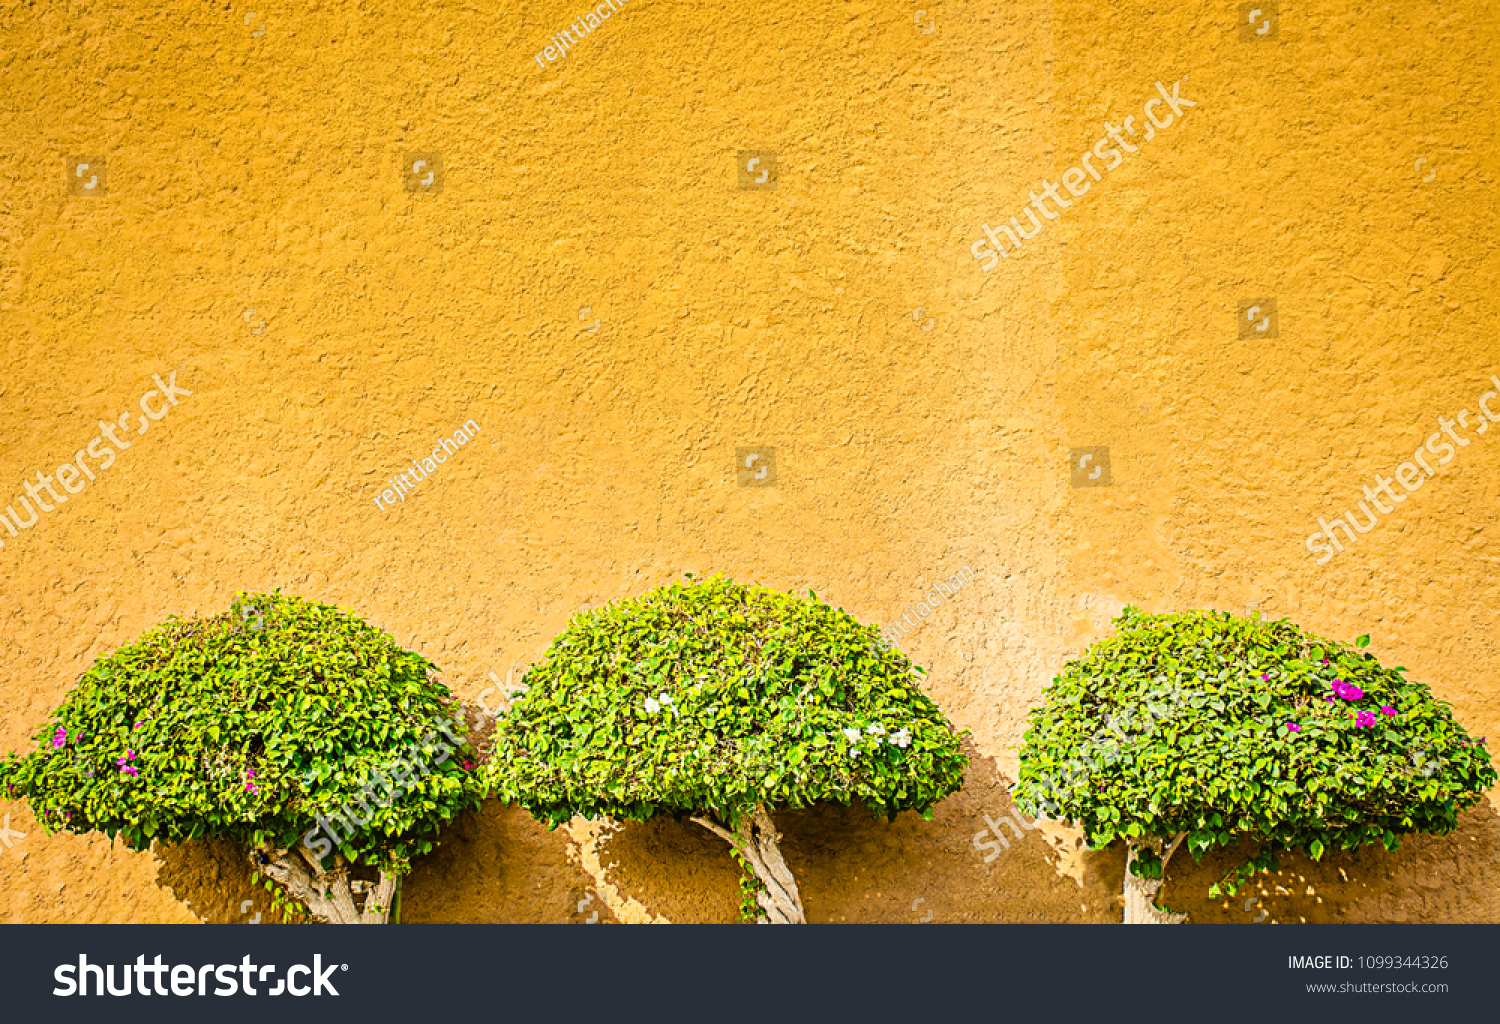 Decorative Plants on the Wall. Three plants, nicely maintained and trimmed grown on an ochre wall for decoration